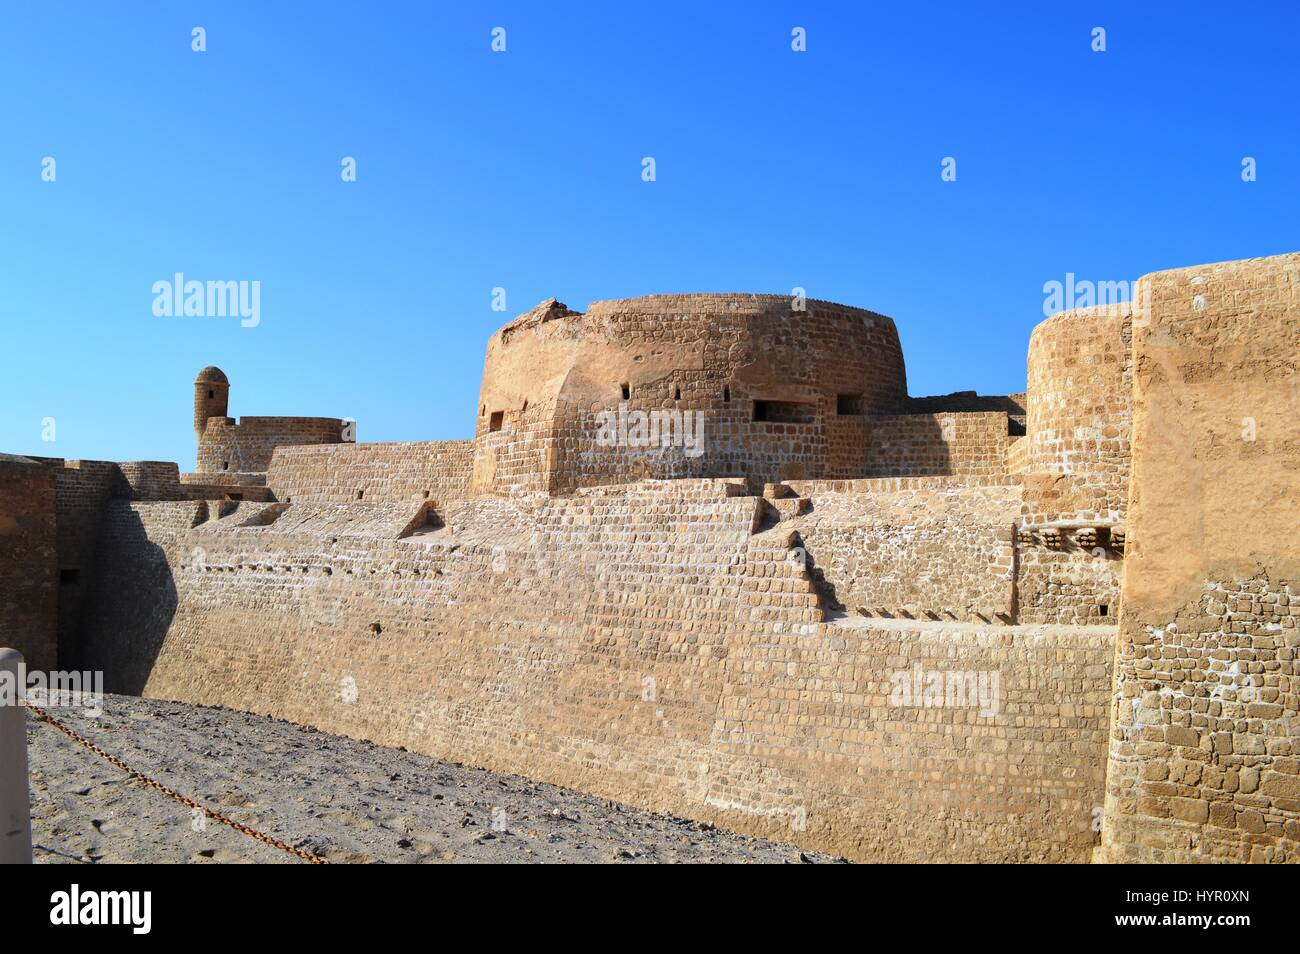 An exterior view of the Bahrain Fort at Al Qalah, Bahrain, in the Middle East. - Stock Image